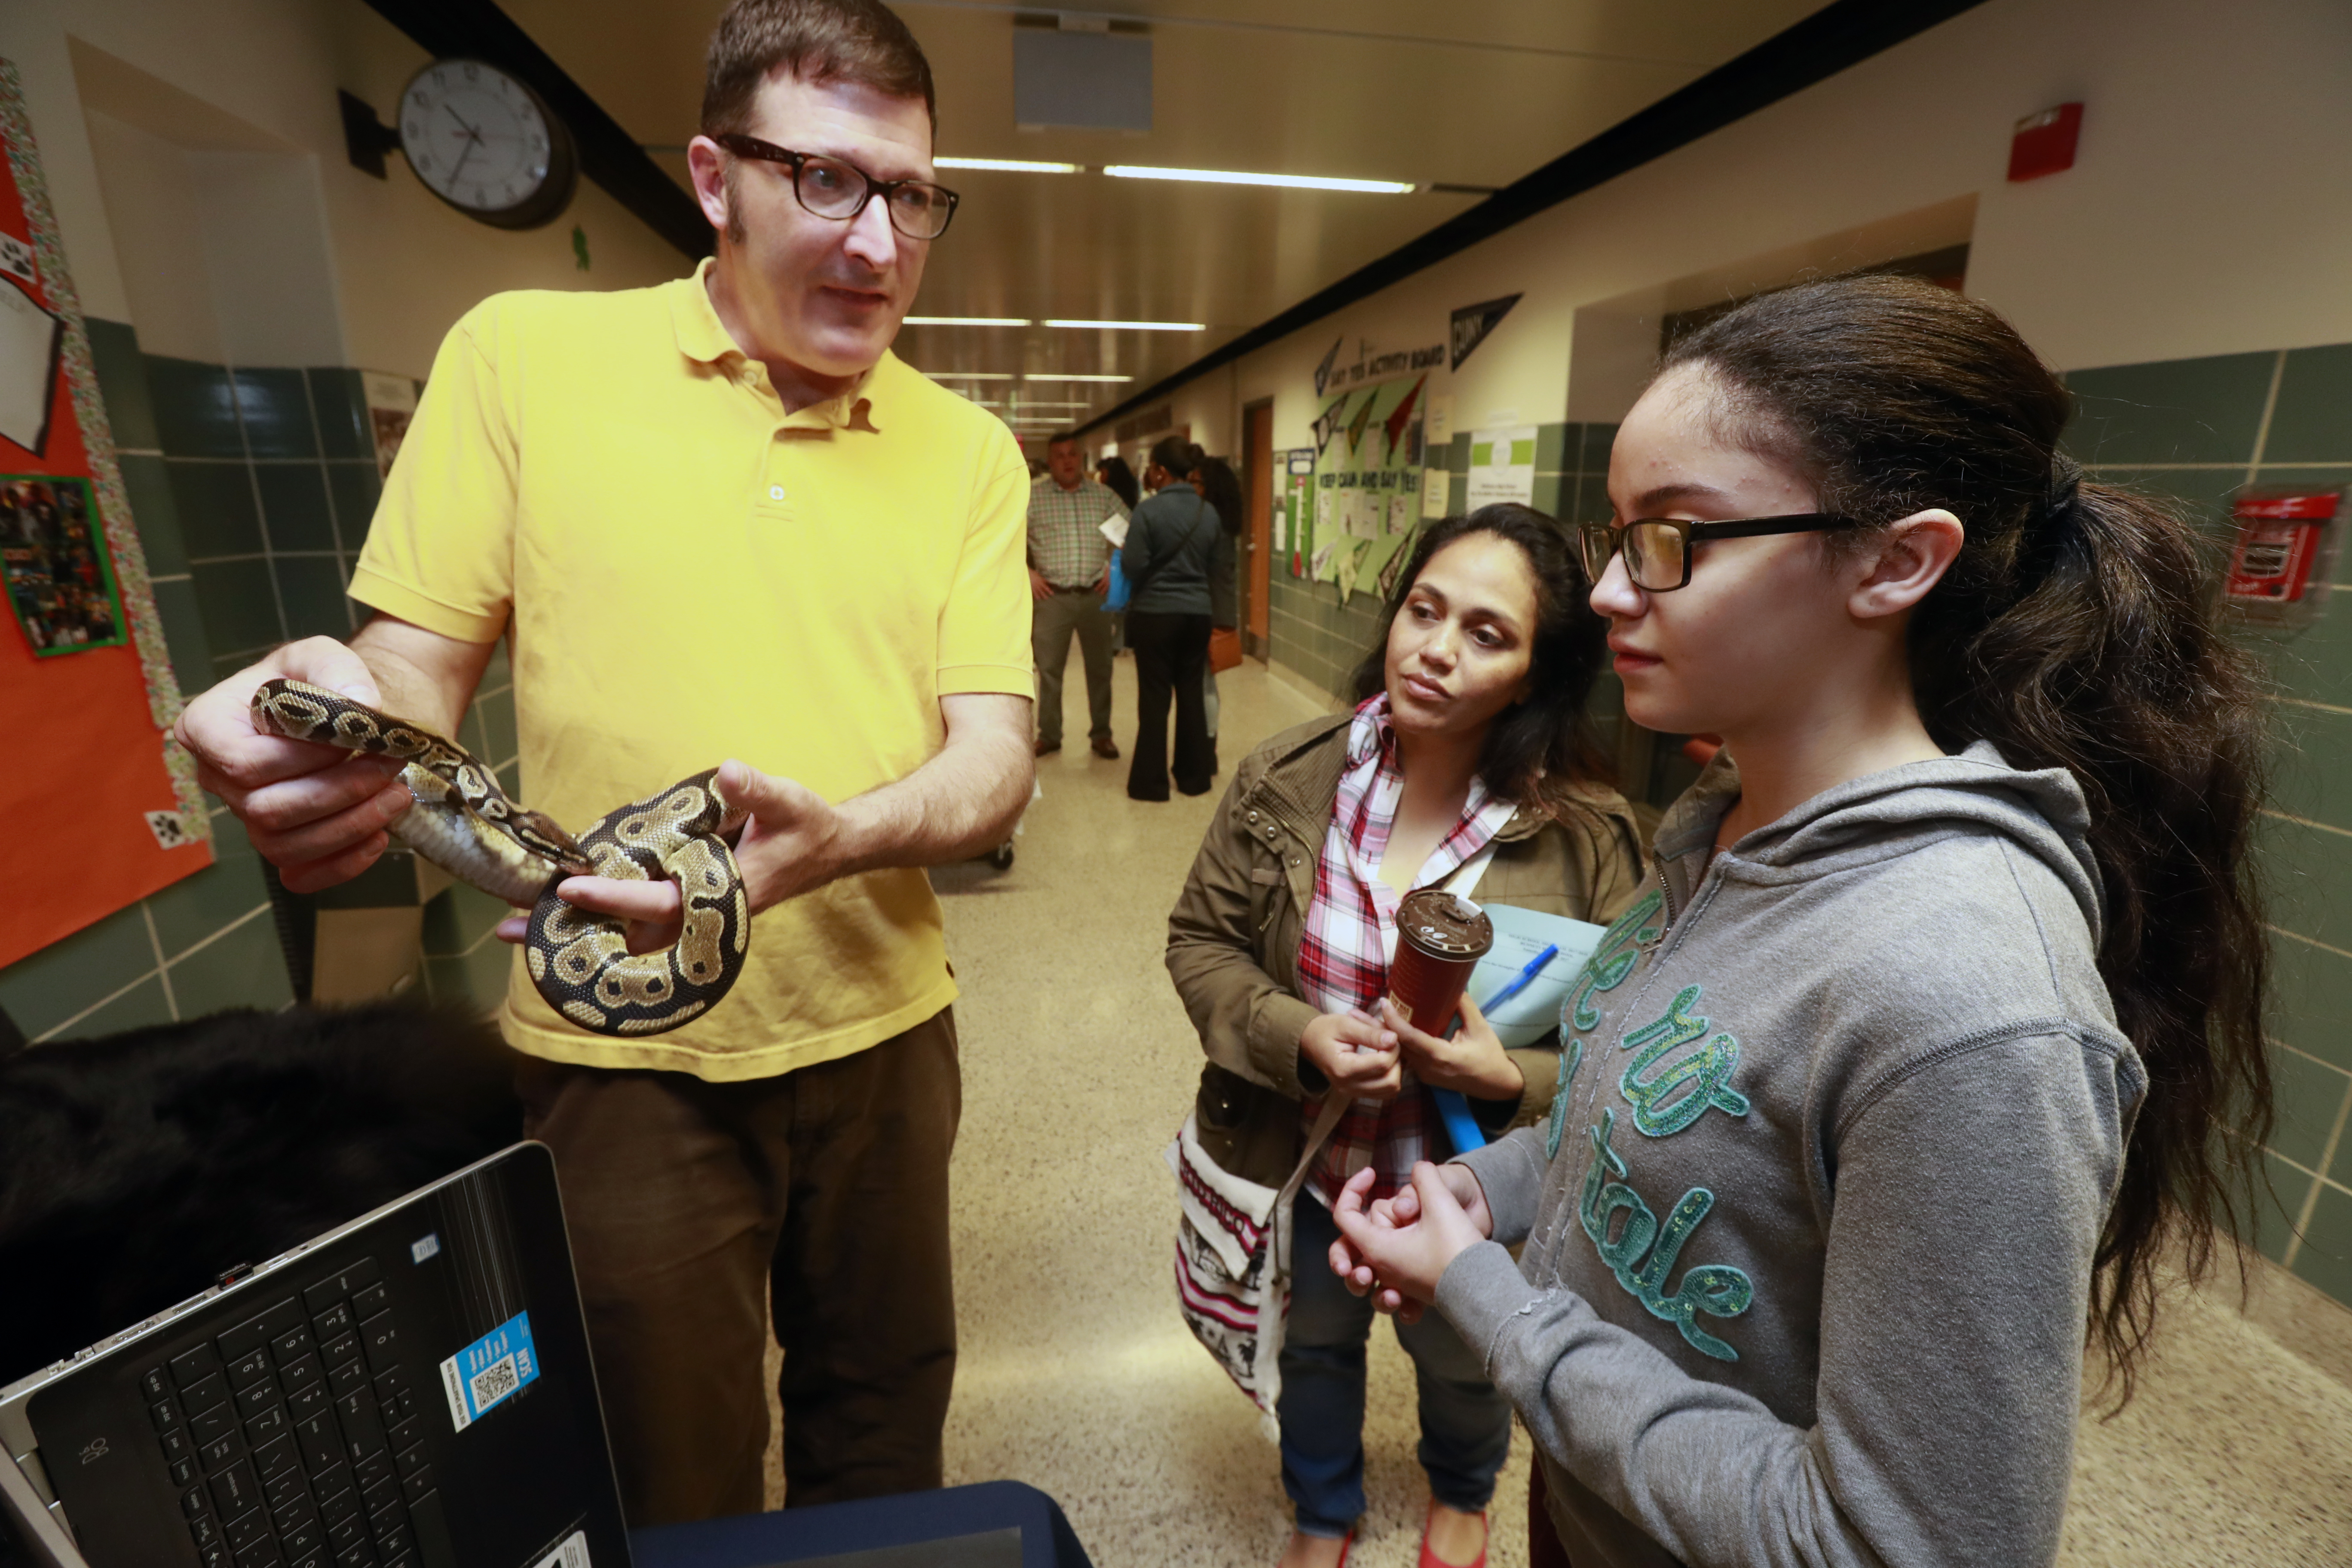 Buffalo Teens Shop For High Schools Offering High Tech Training And Careers  U2013 The Buffalo News